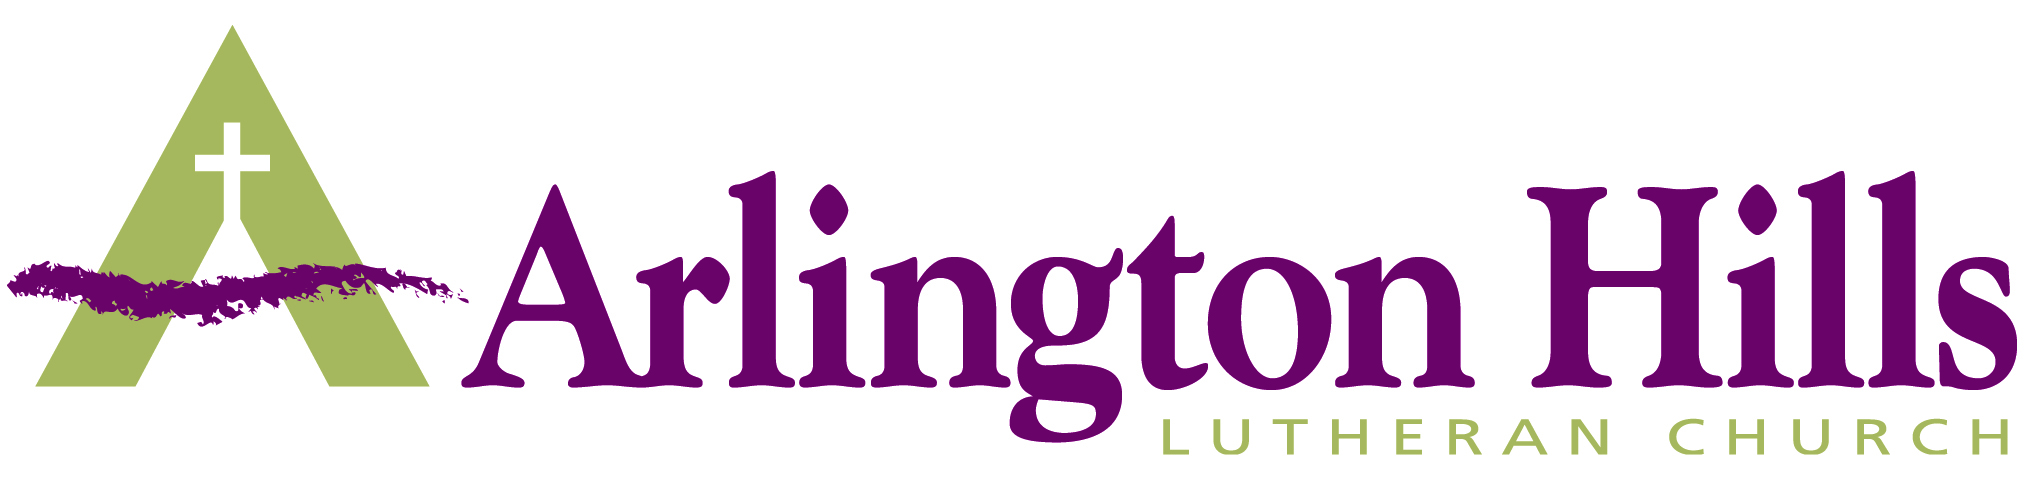 Arlington Hills Lutheran Church logo